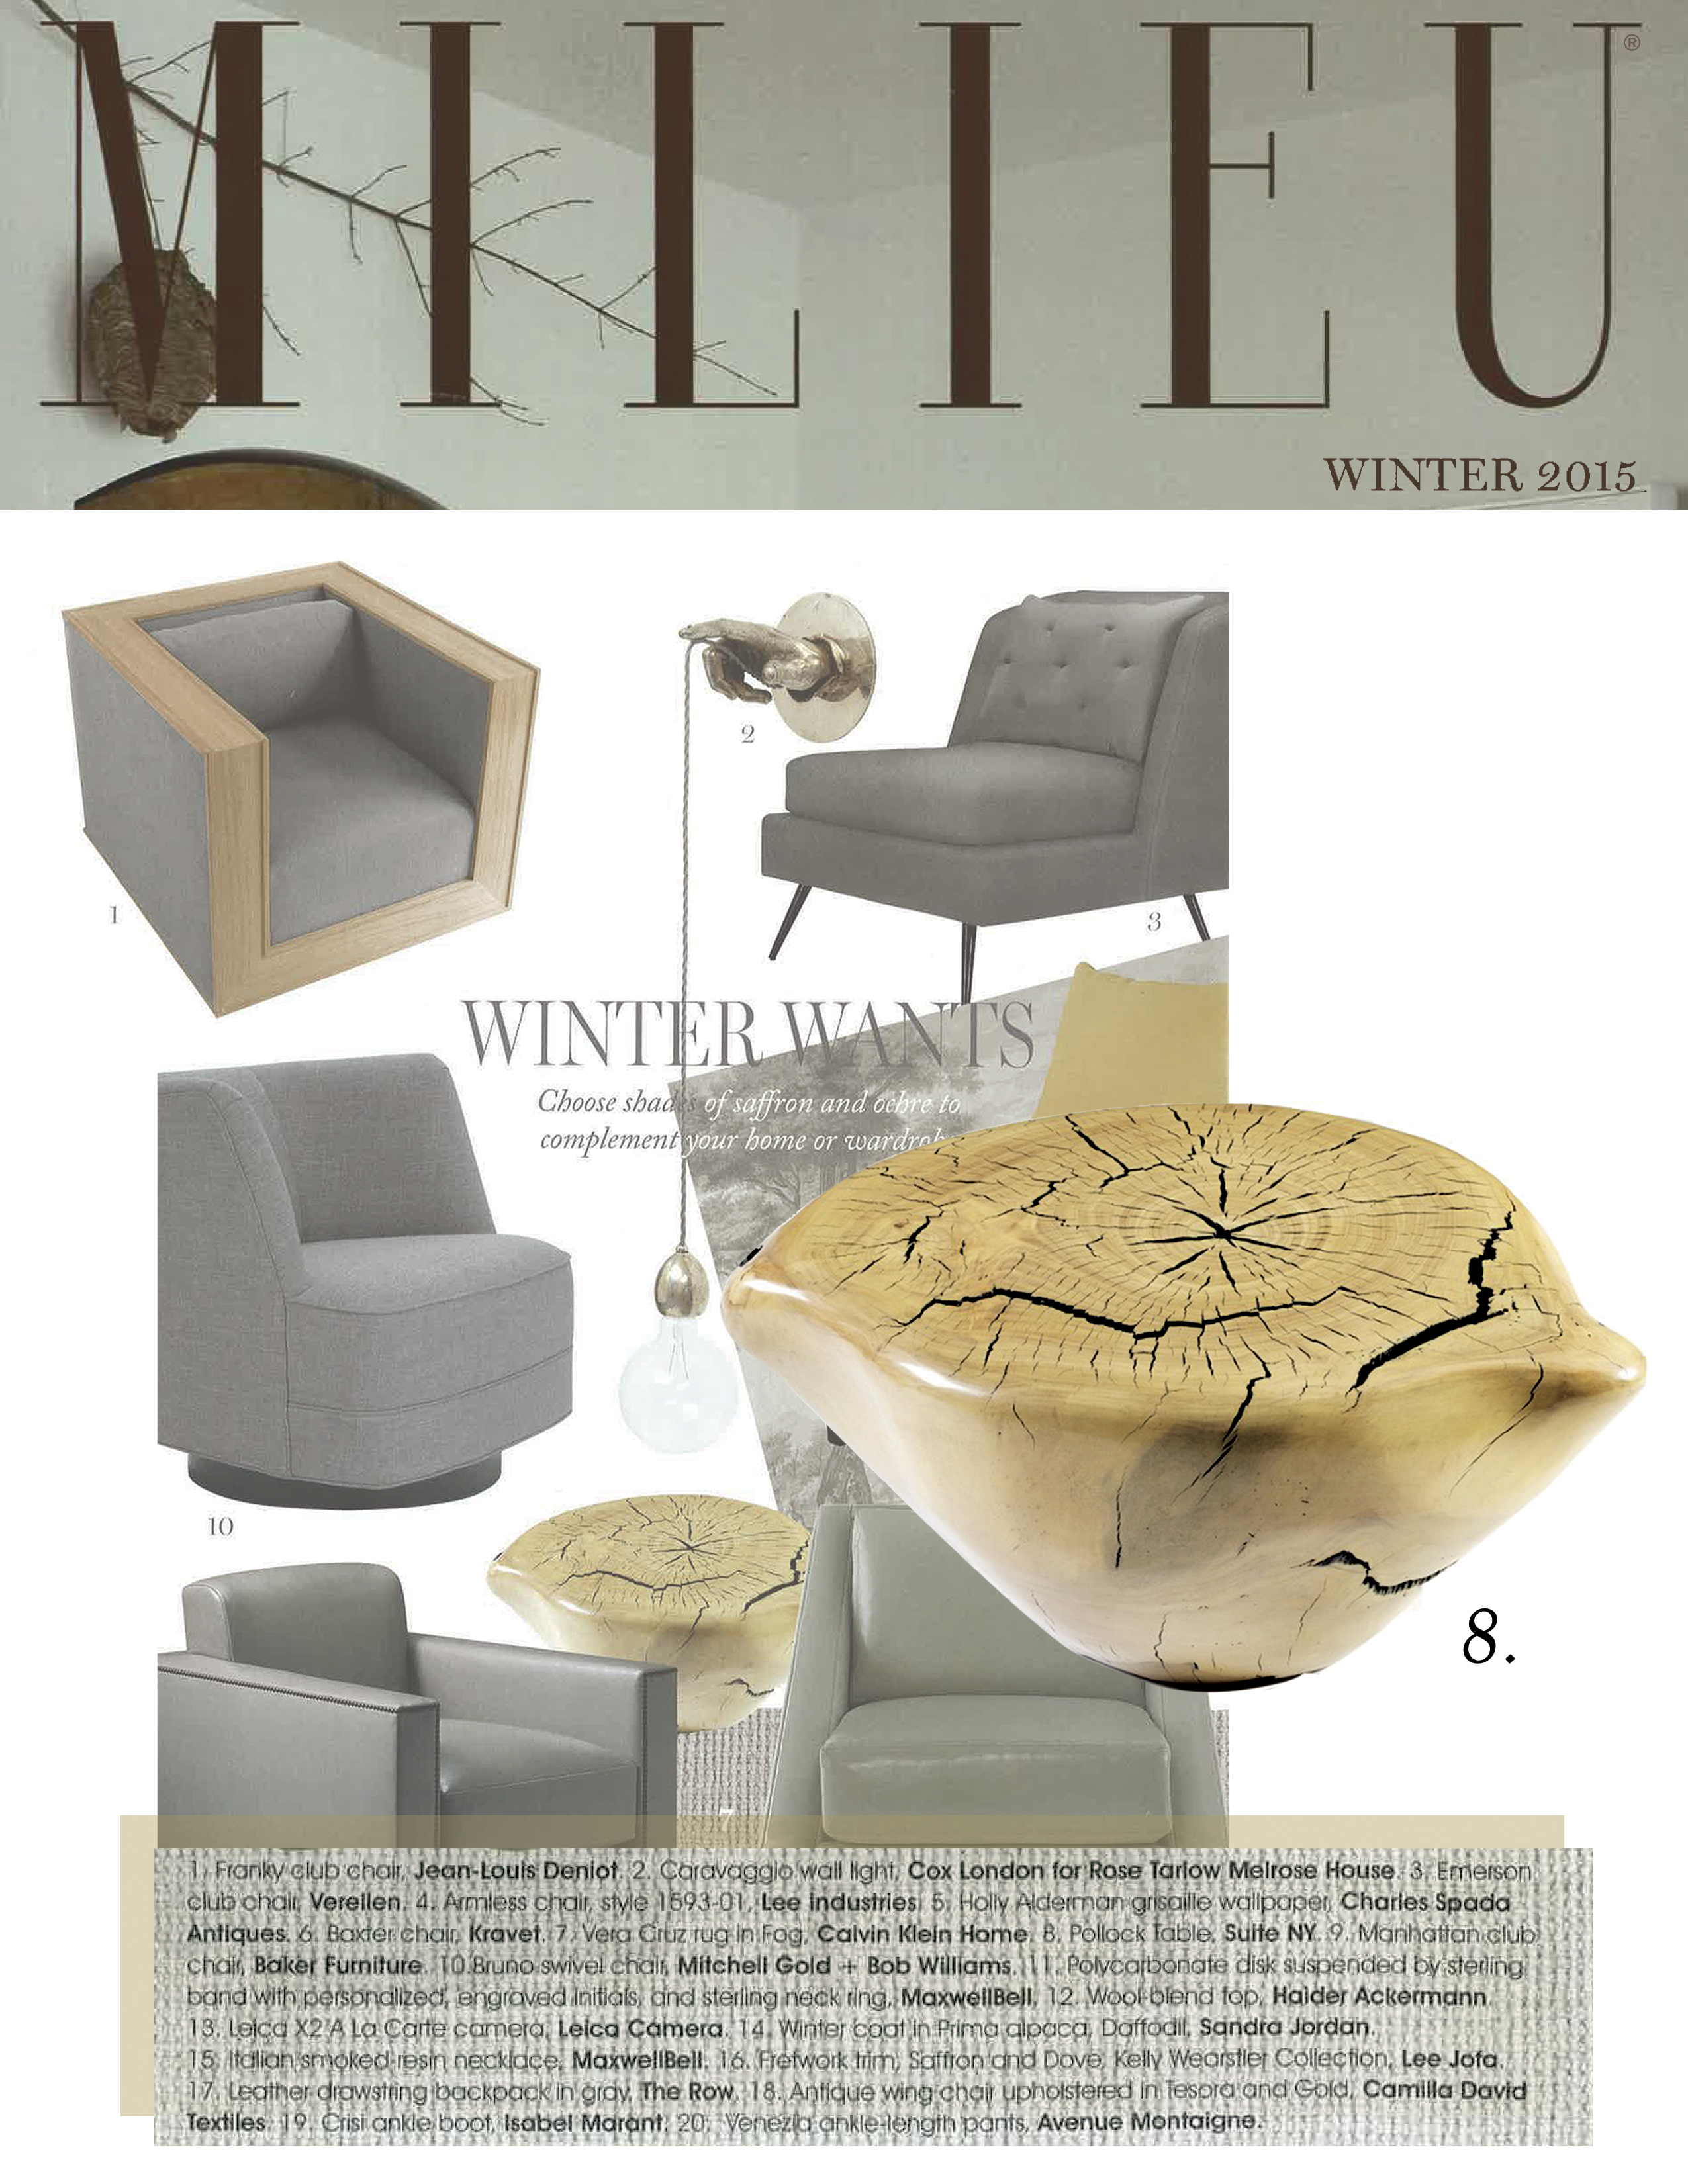 Dan Pollock, pollock, dan pollock, wooden table, modern nesting tables, hand crafted tables, pollock tables, occasional tables, suite ny, suiteny.com, suite new york, millieu magazine, winter 2014